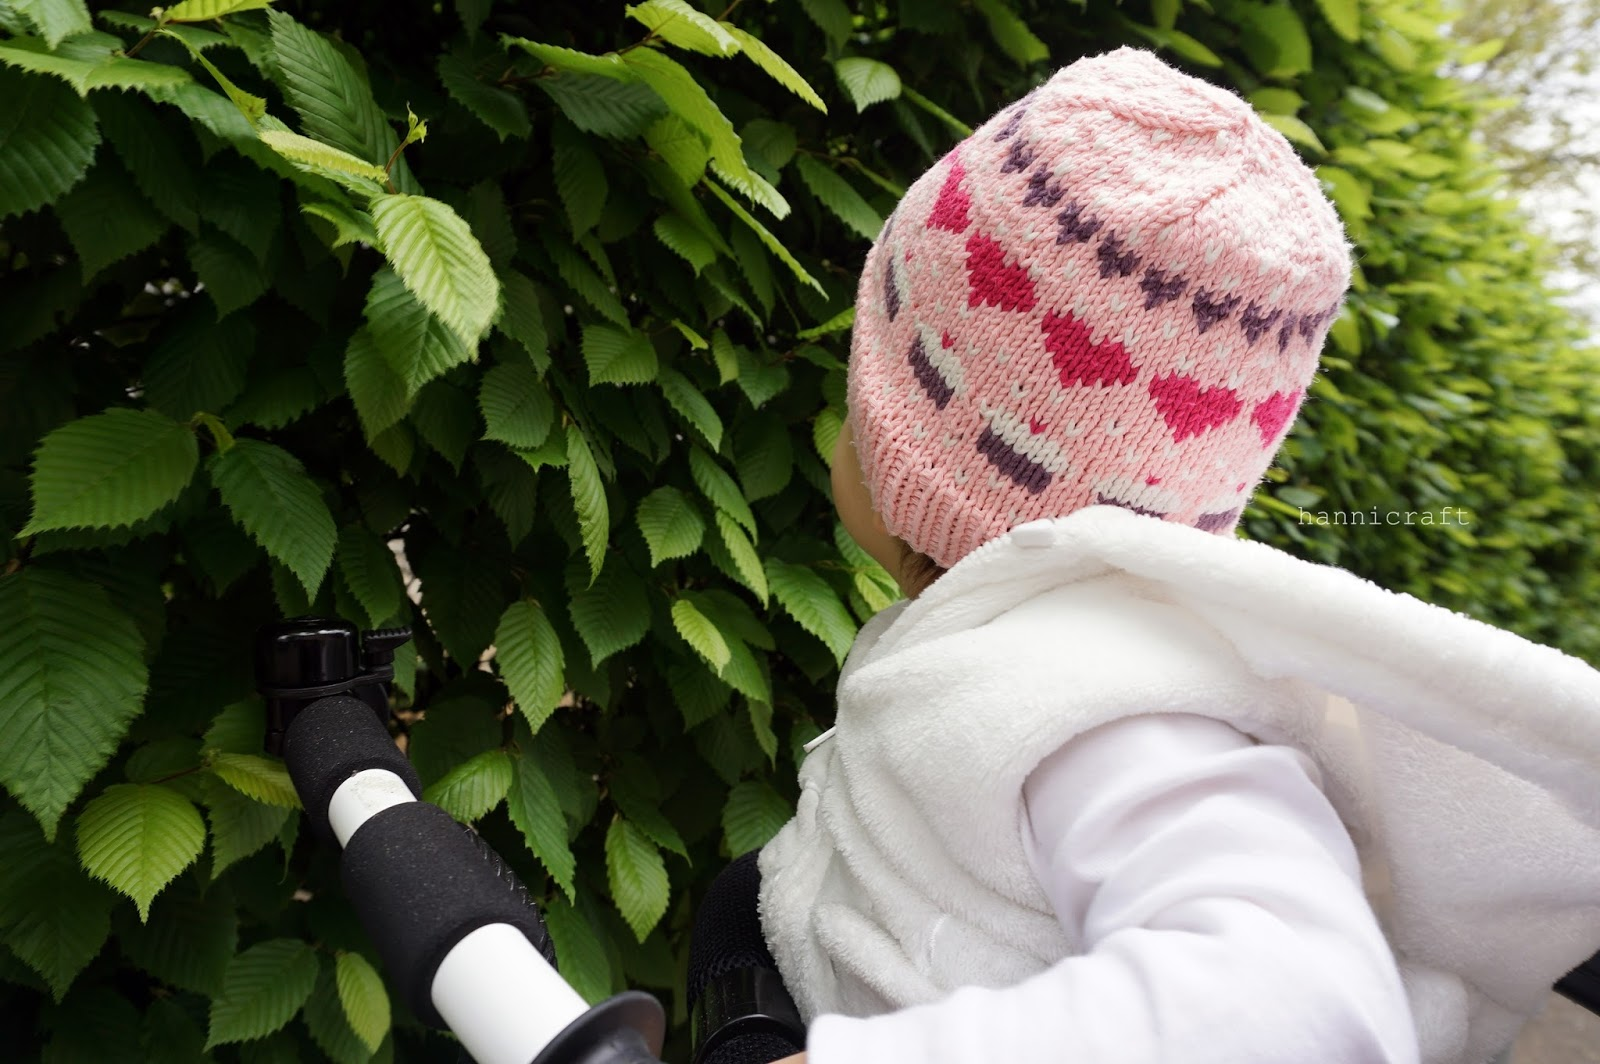 hearts&cupcakes girls' hat knitting pattern by hannicraft